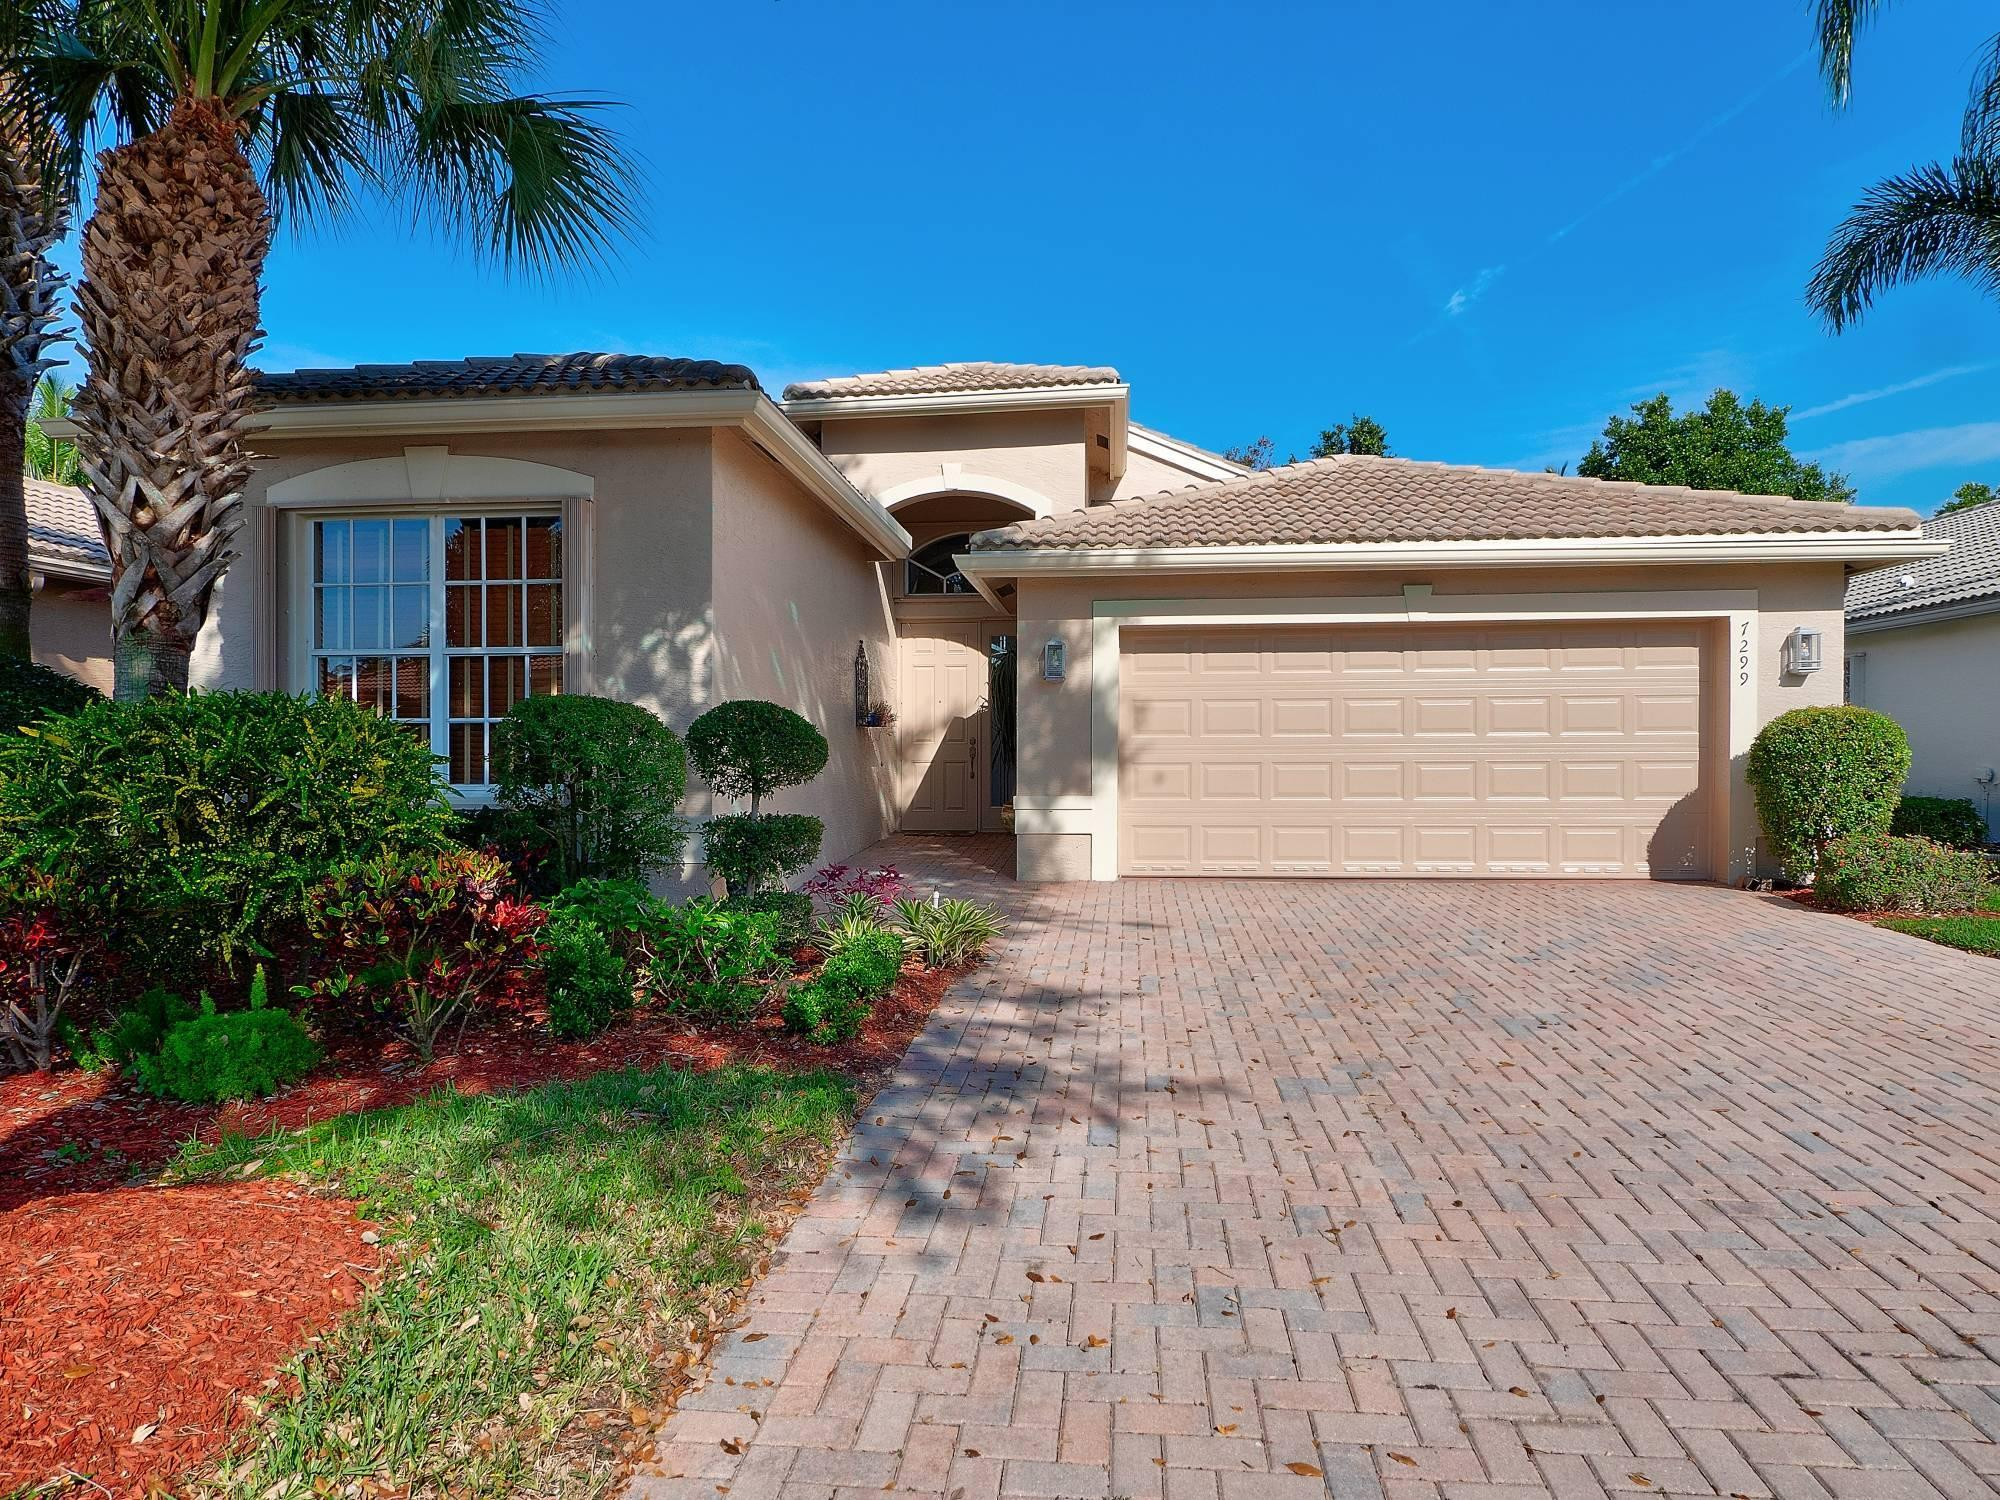 7299 Maple Ridge Trail, Boynton Beach, Florida 33437, 3 Bedrooms Bedrooms, ,2 BathroomsBathrooms,Single Family,For Sale,Maple Ridge,RX-10590056